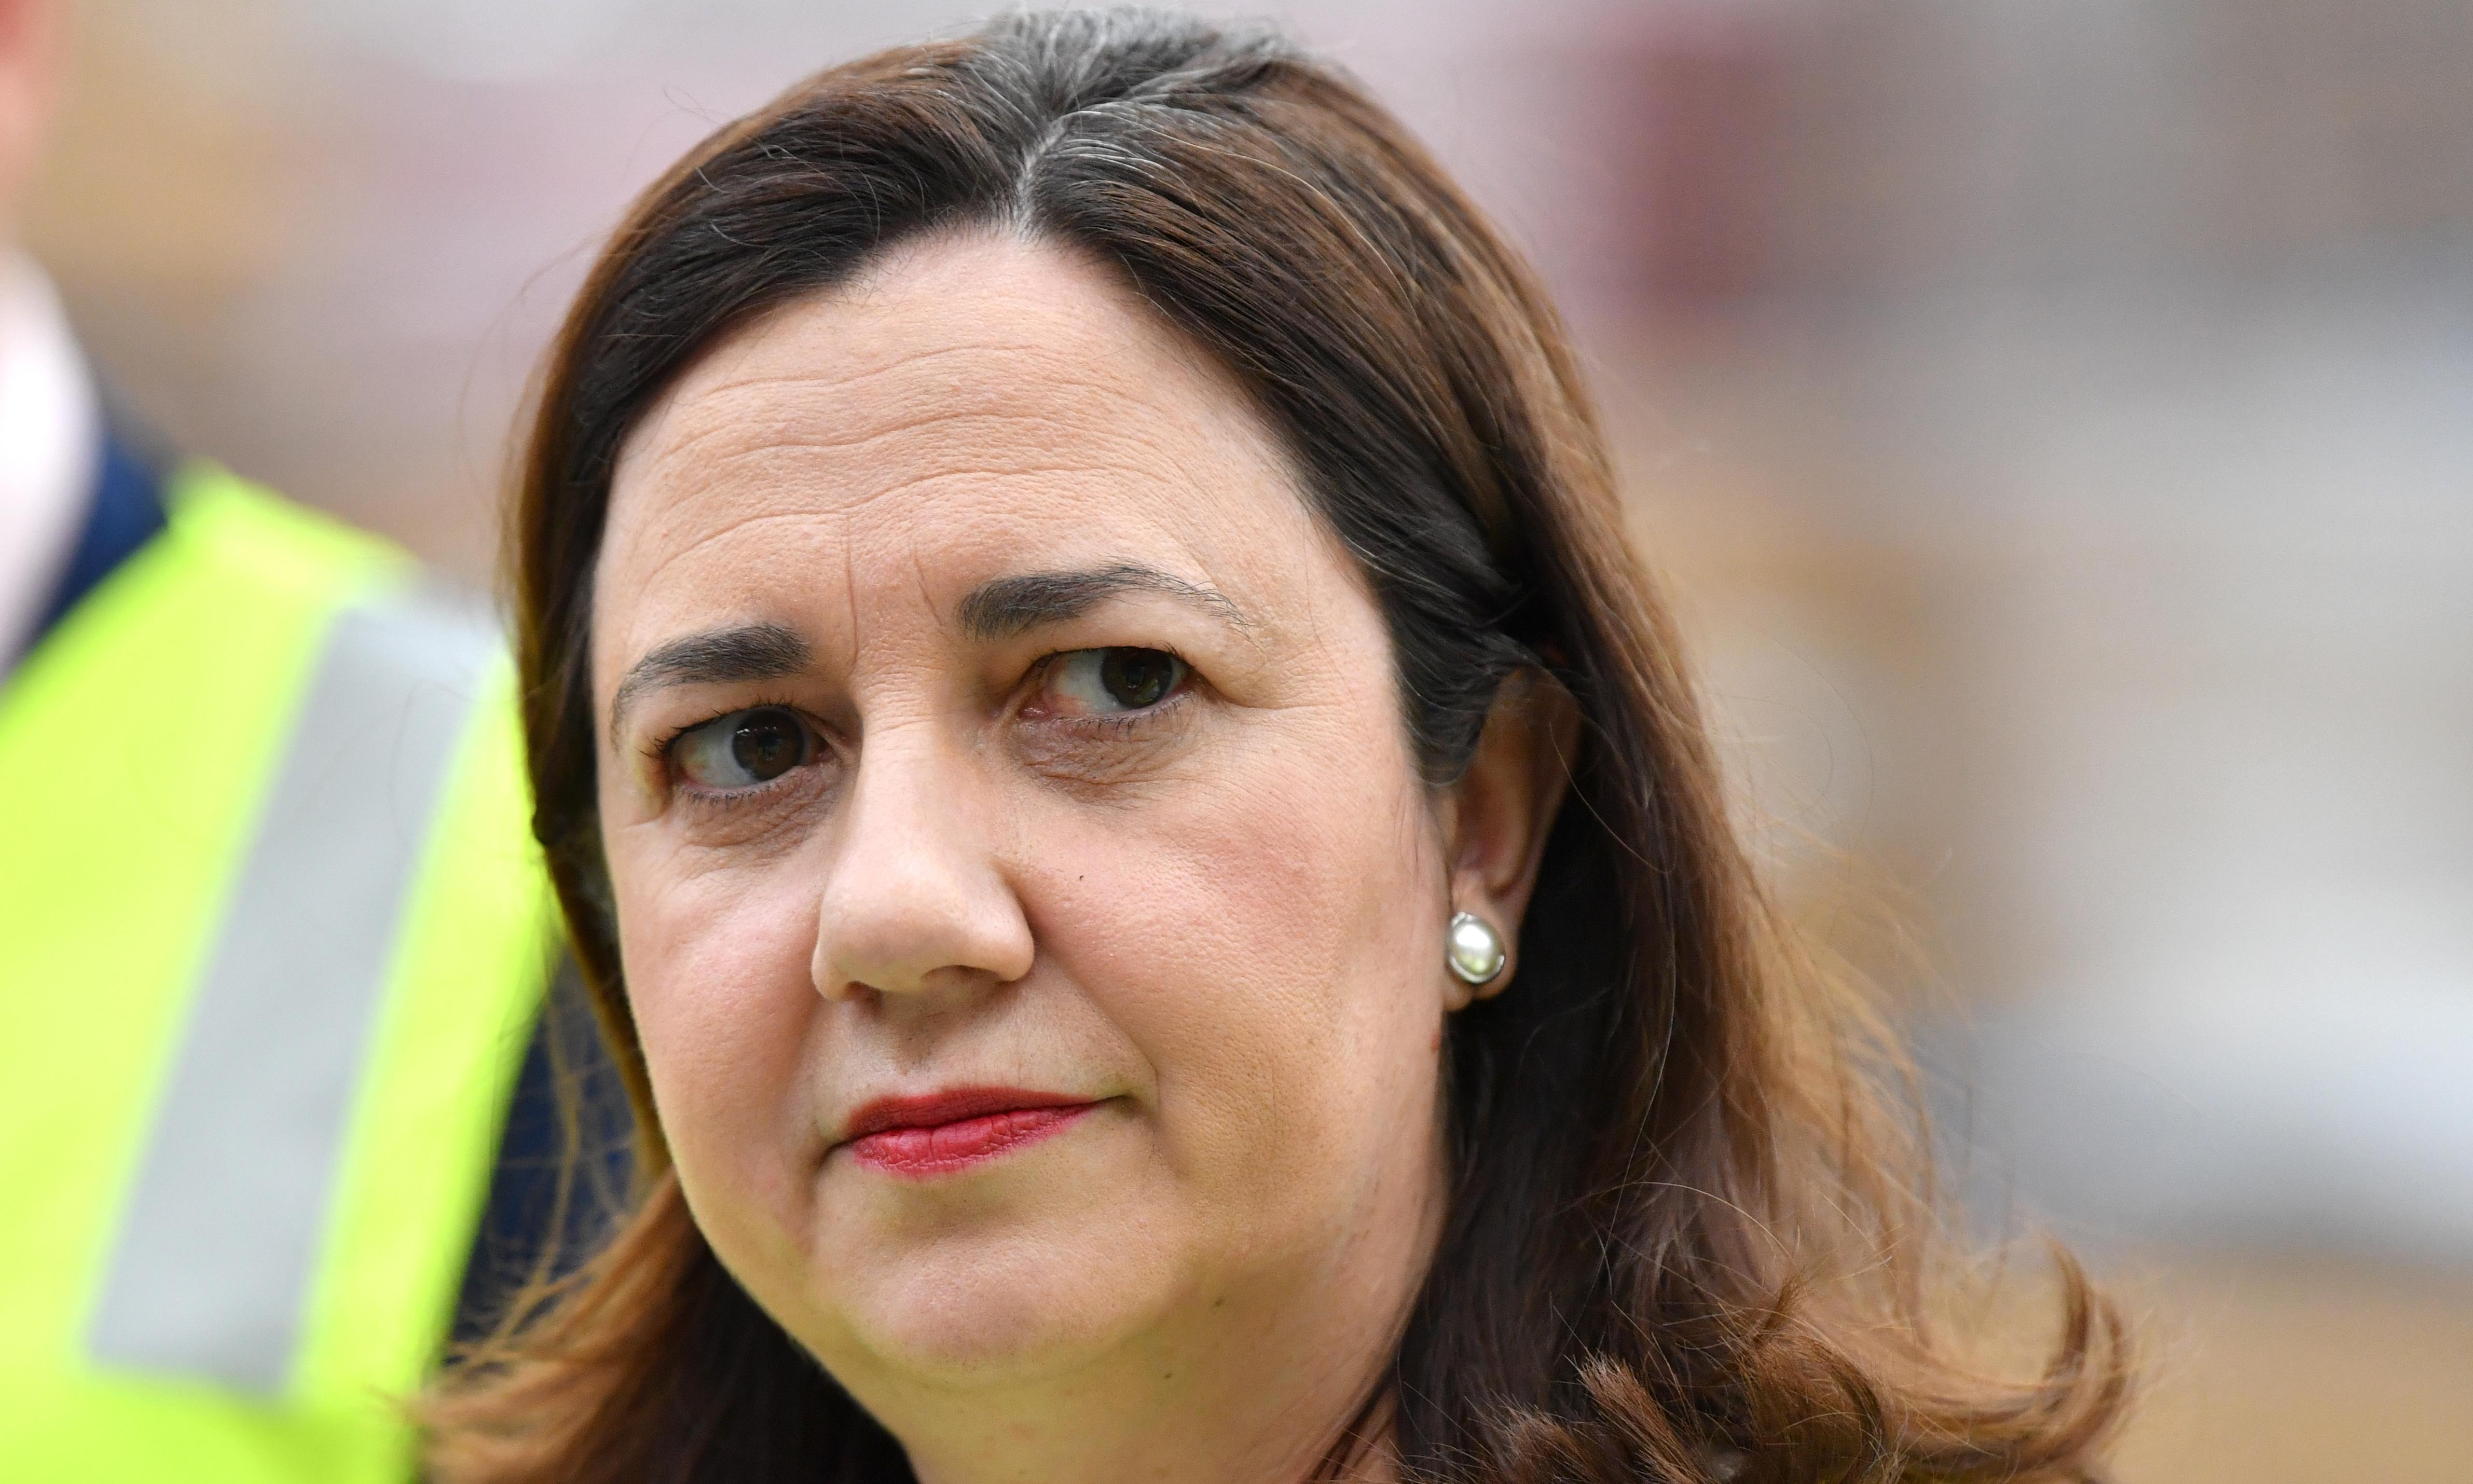 Annastacia Palaszczuk is cracking down on protesters – she is likely correct about public sentiment